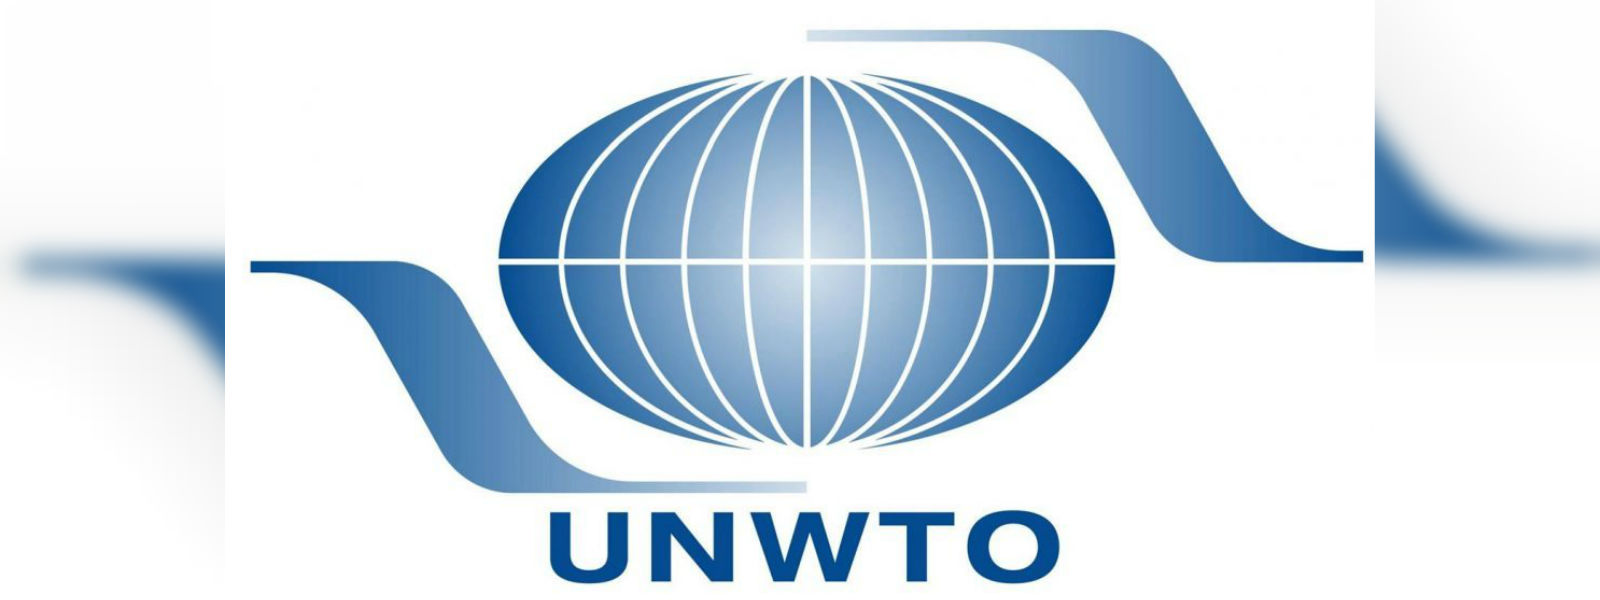 32nd Joint Meeting of WTOC for East Asia and the Pacific and Commission for South Asia to be held in Sri Lanka